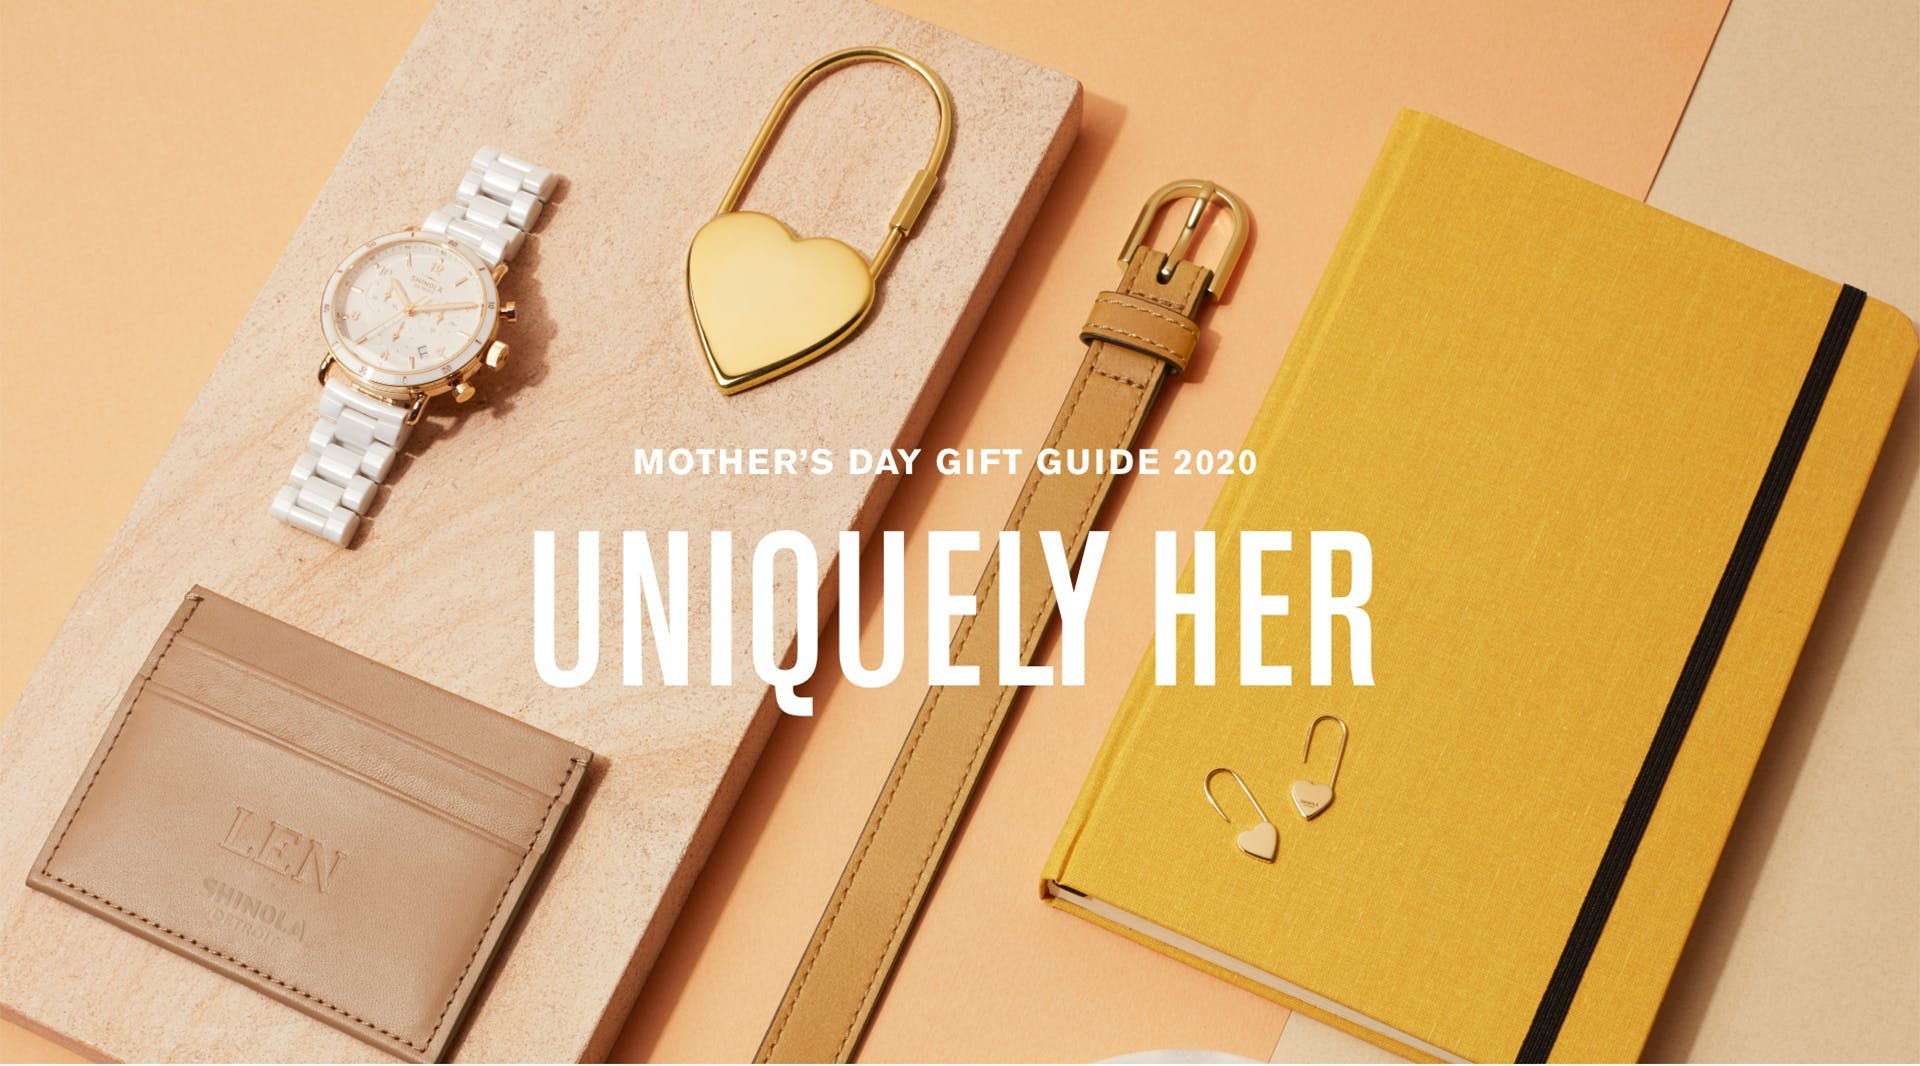 Collage of Shinola women's products: watch, heart charm, belt, journal, cardcase and more